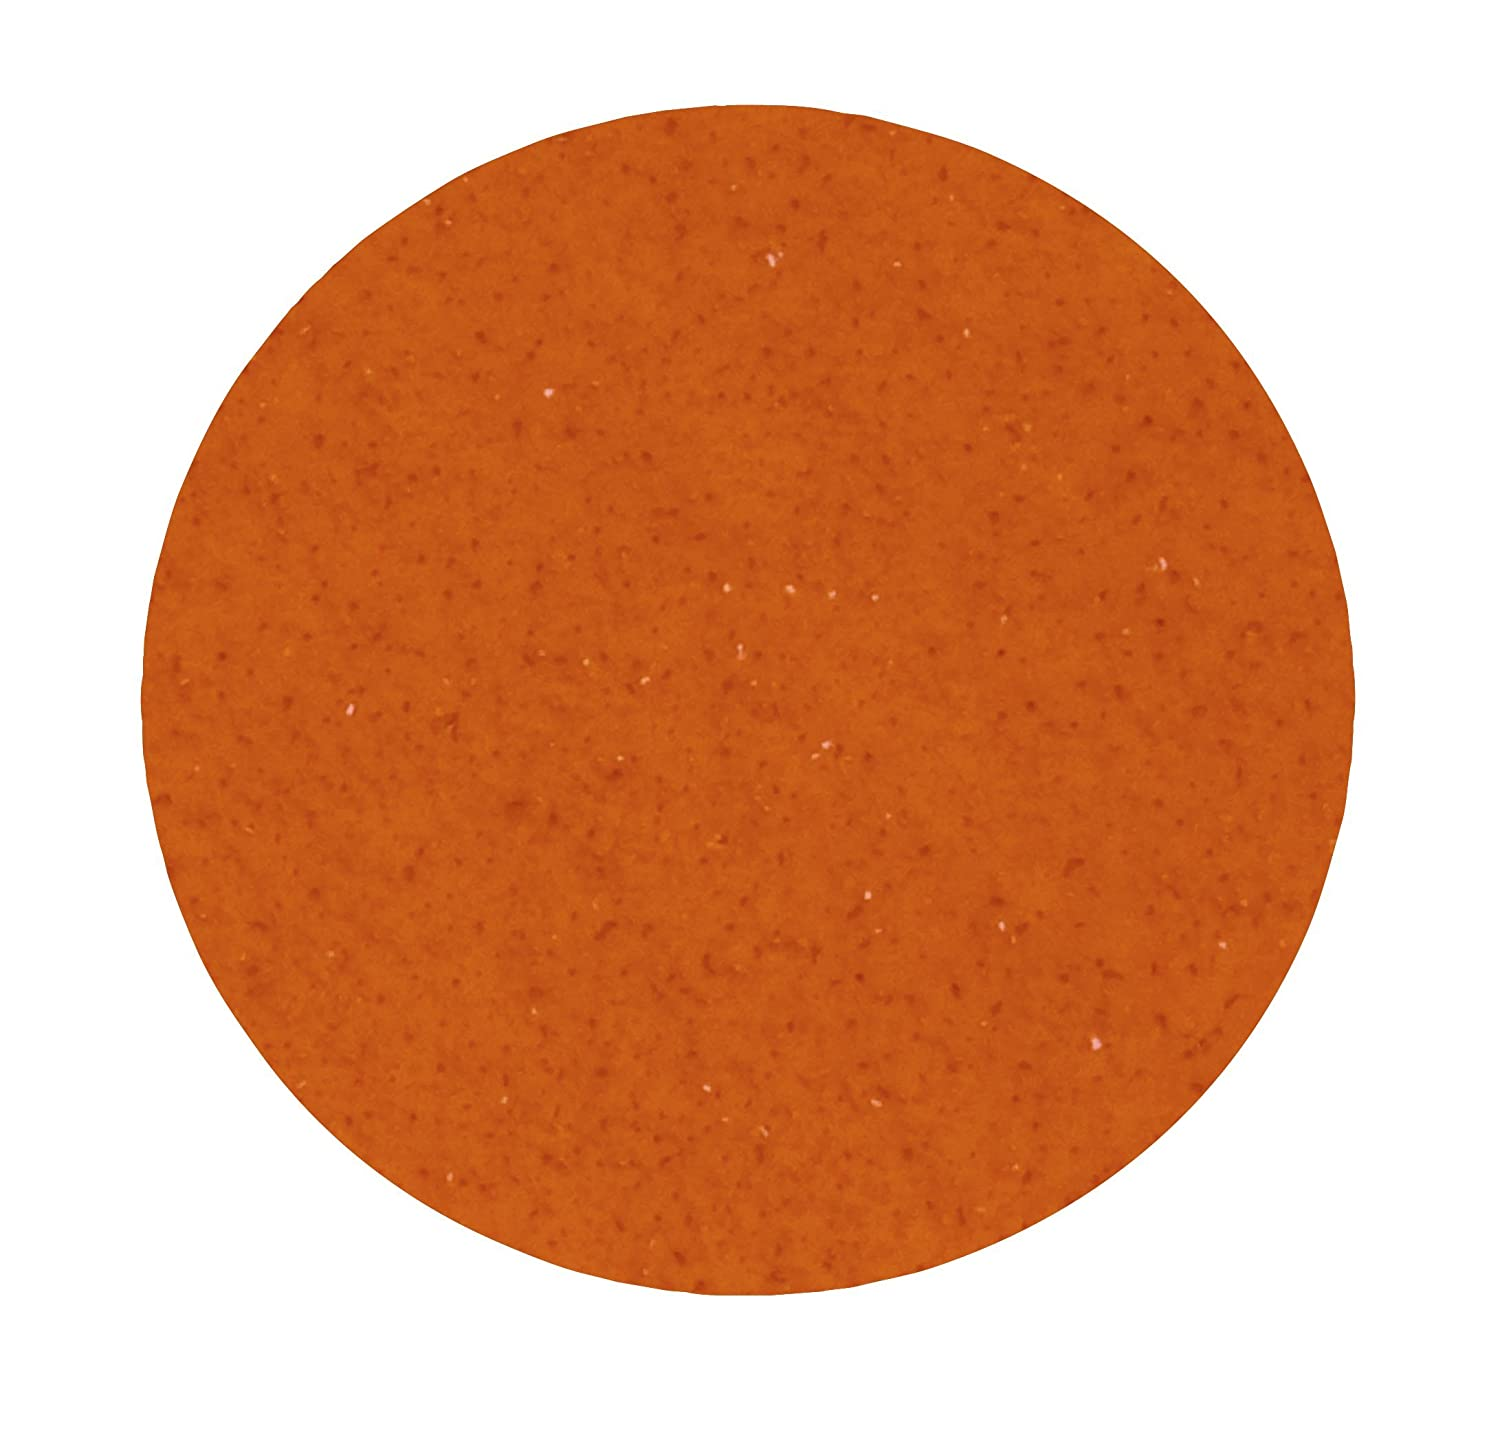 3M Roloc Durable Edge Disc TSM 977F Ceramic Grain 1-1//2 Diameter Pack of 50 36 Grit YN Weight Polyester Cloth Dry//Wet 1-1//2 Diameter